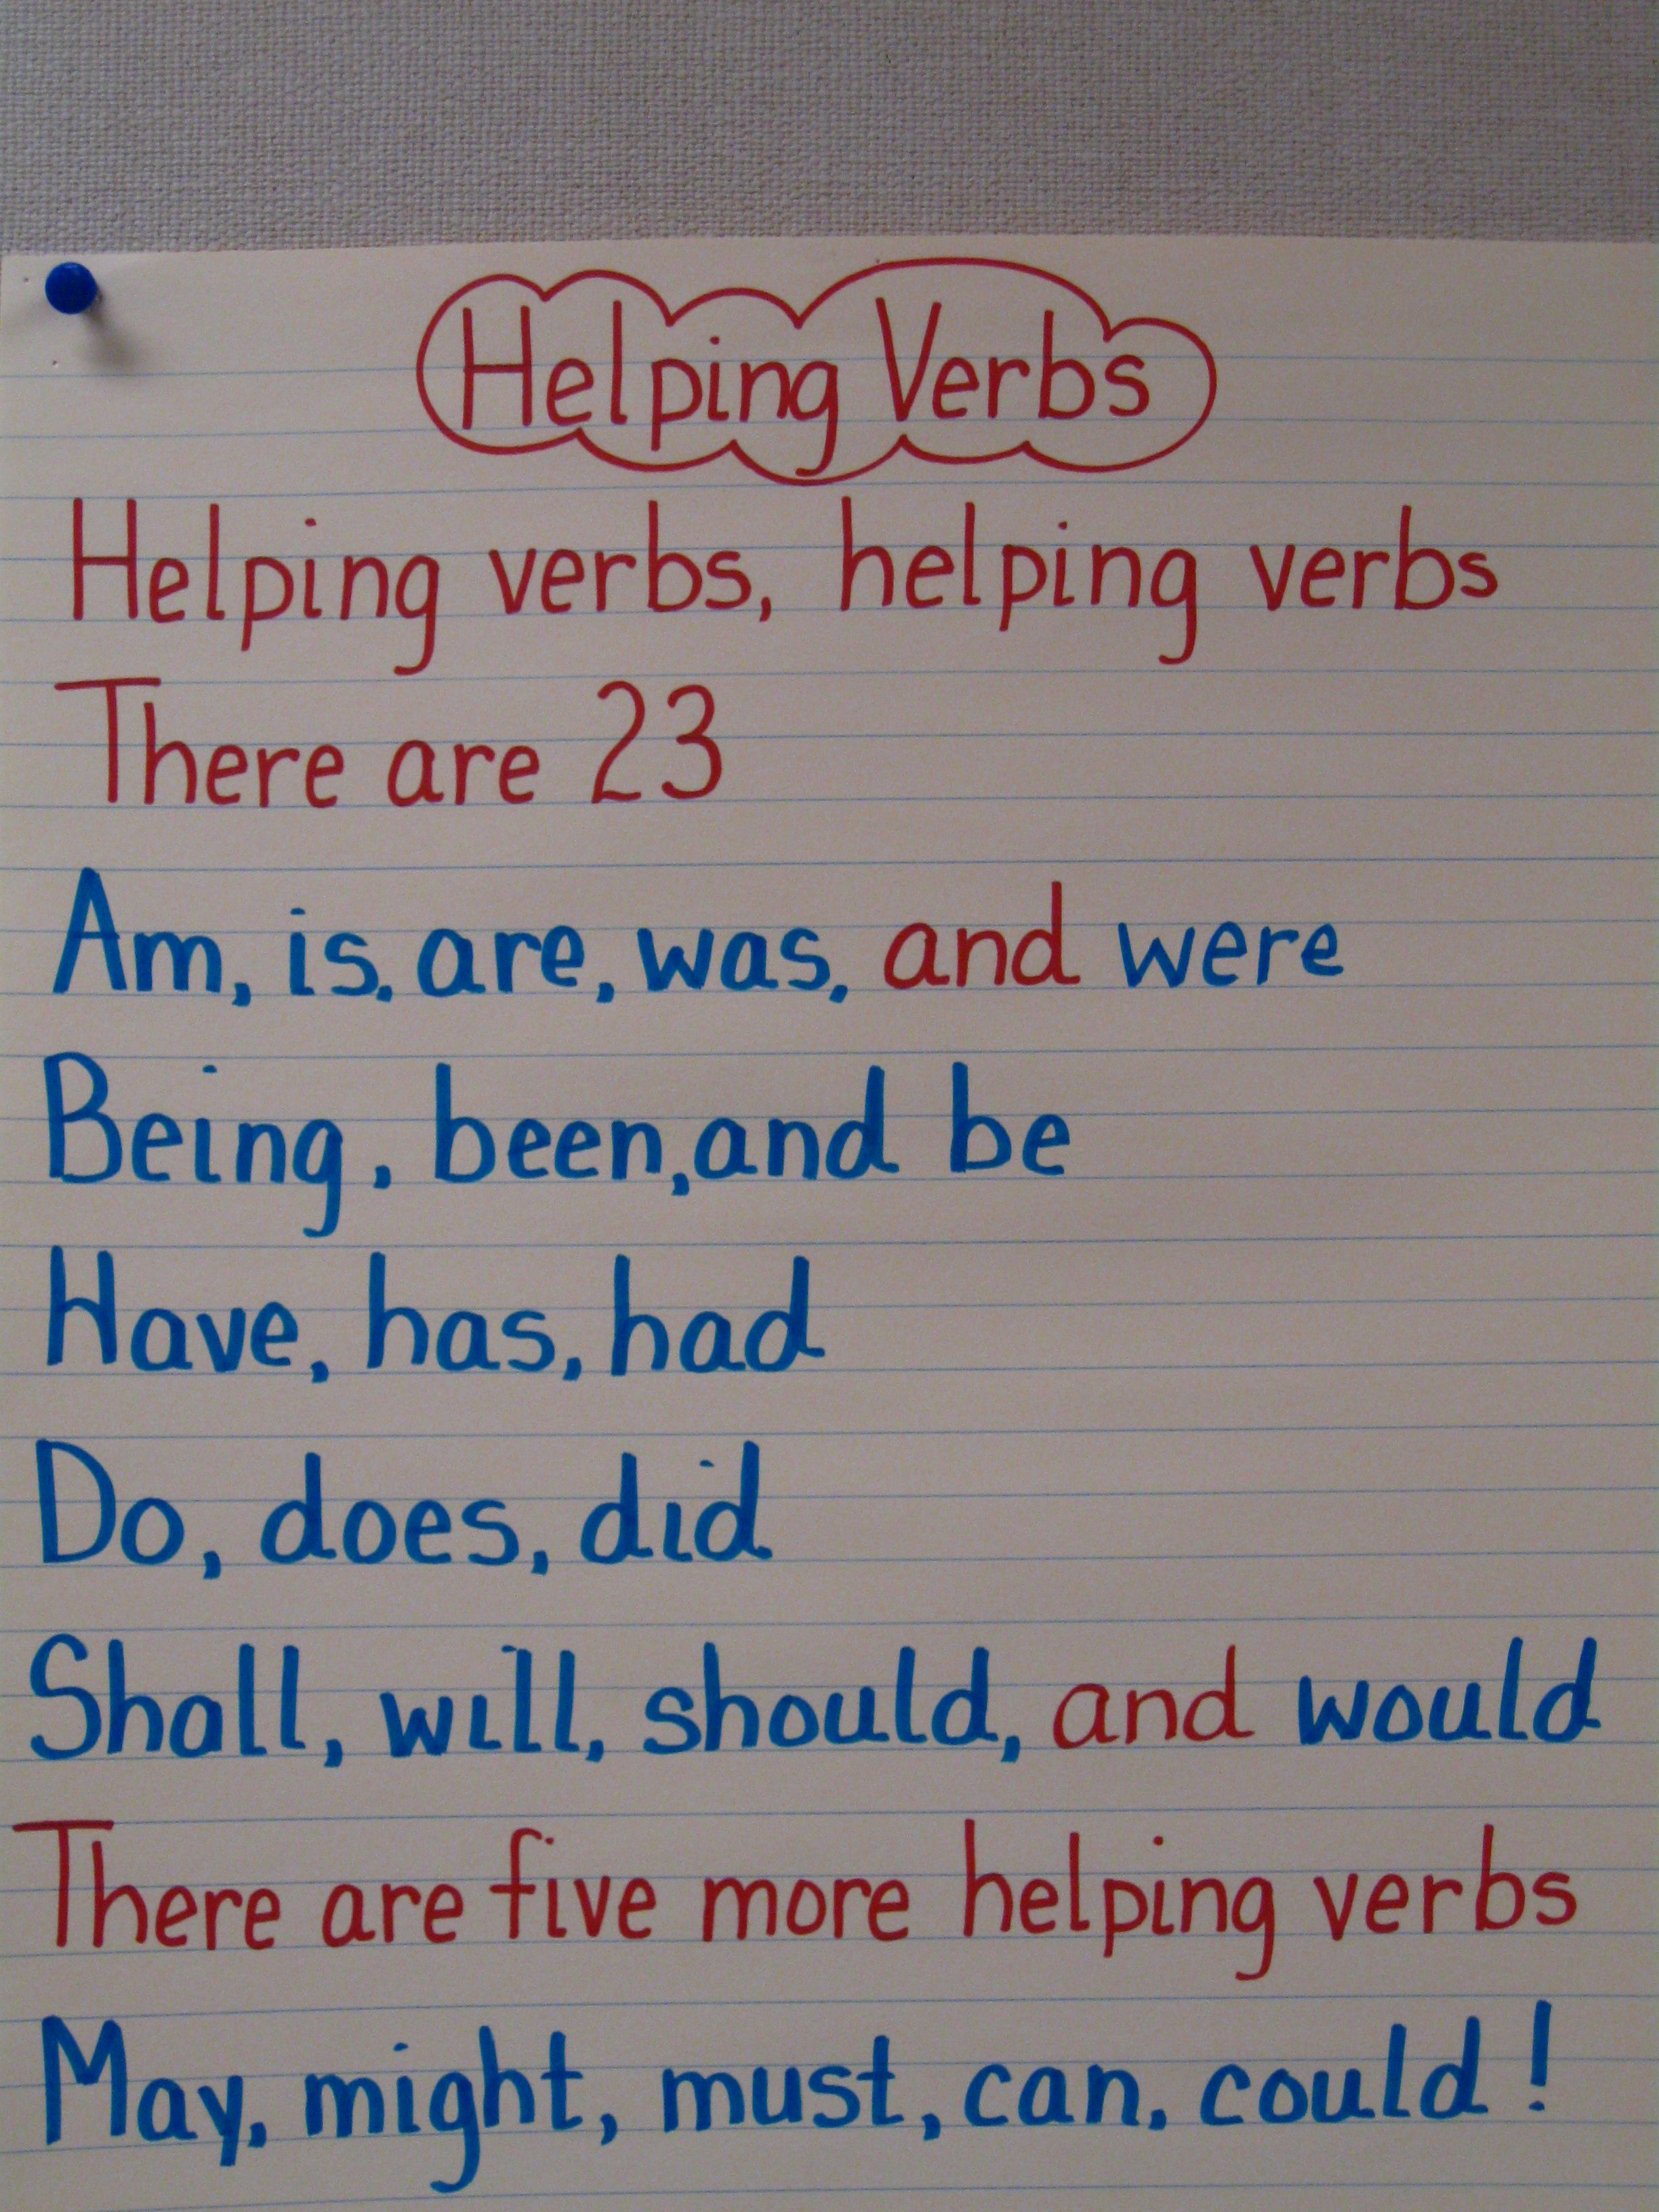 Helping Verbs To The Tune Of Jingle Bells For Grammar Lapbook